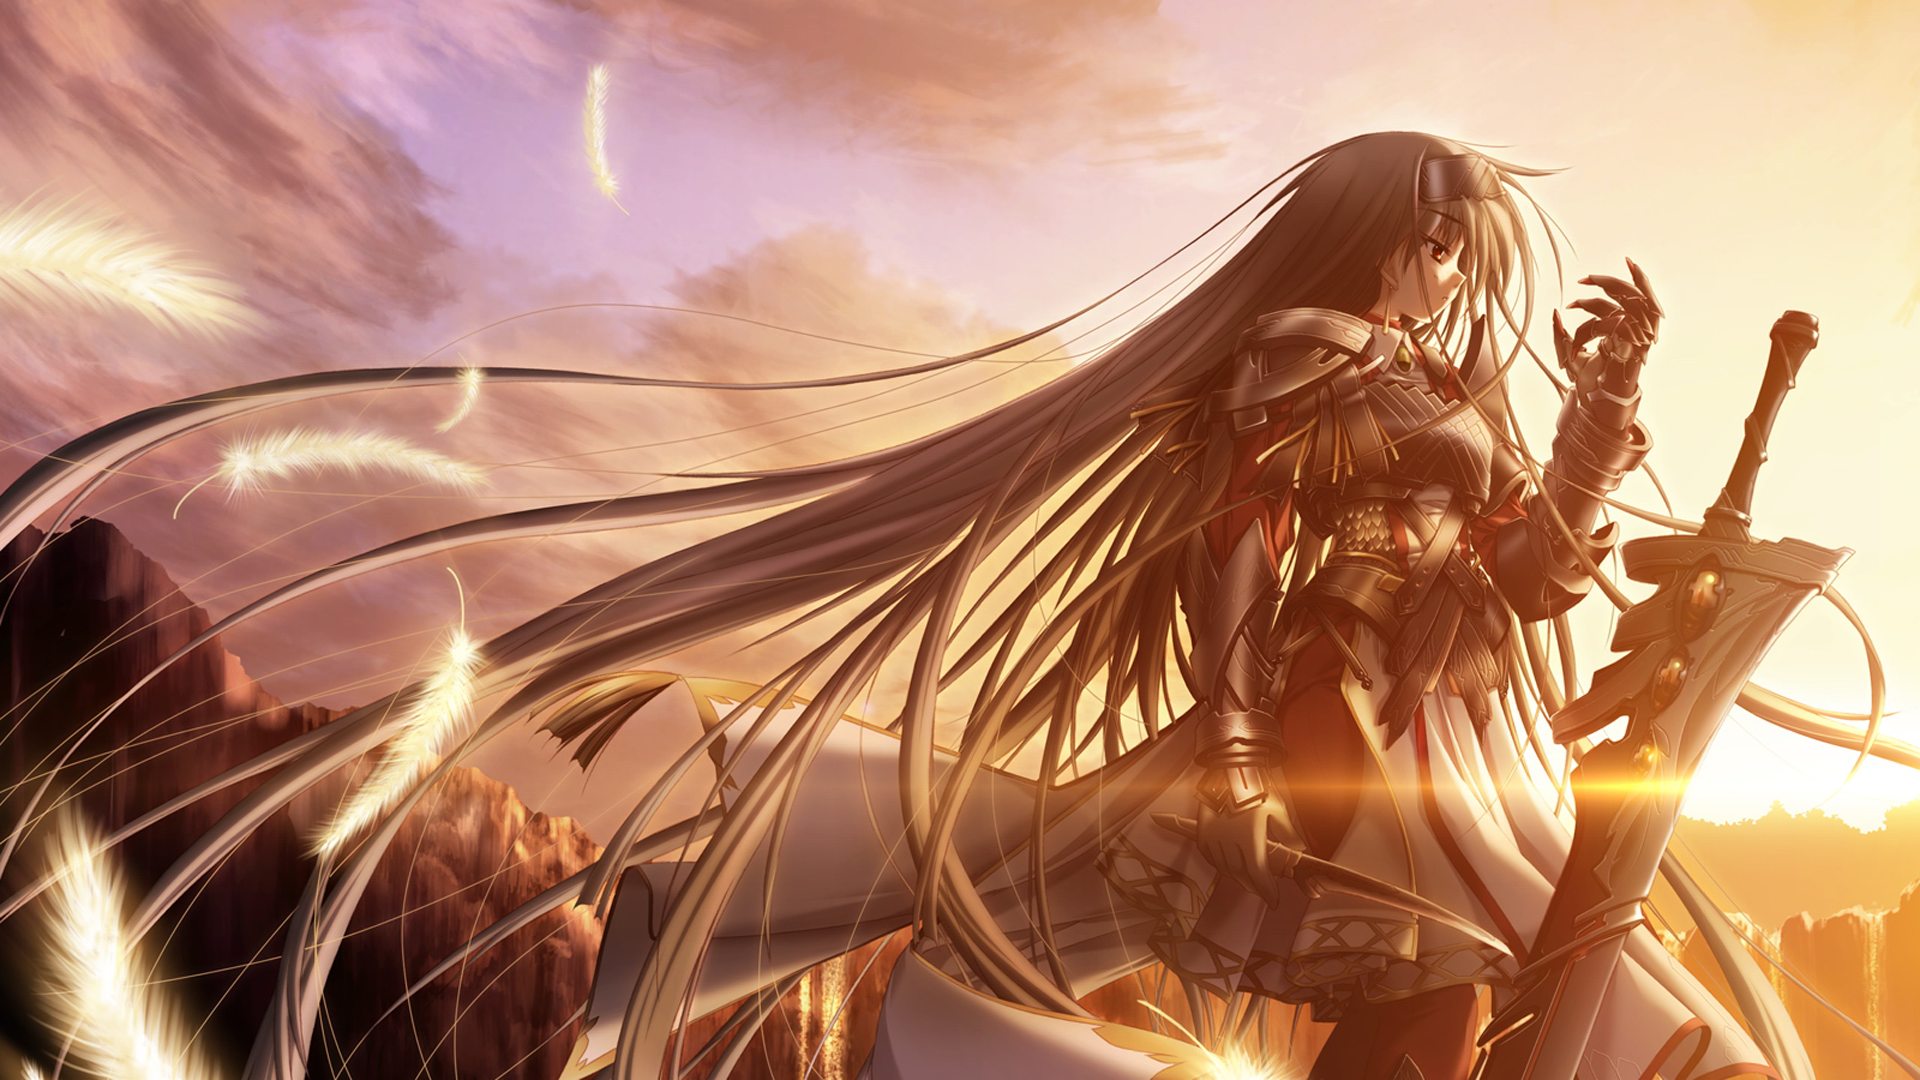 Anime Wallpaper HD 1920x1080